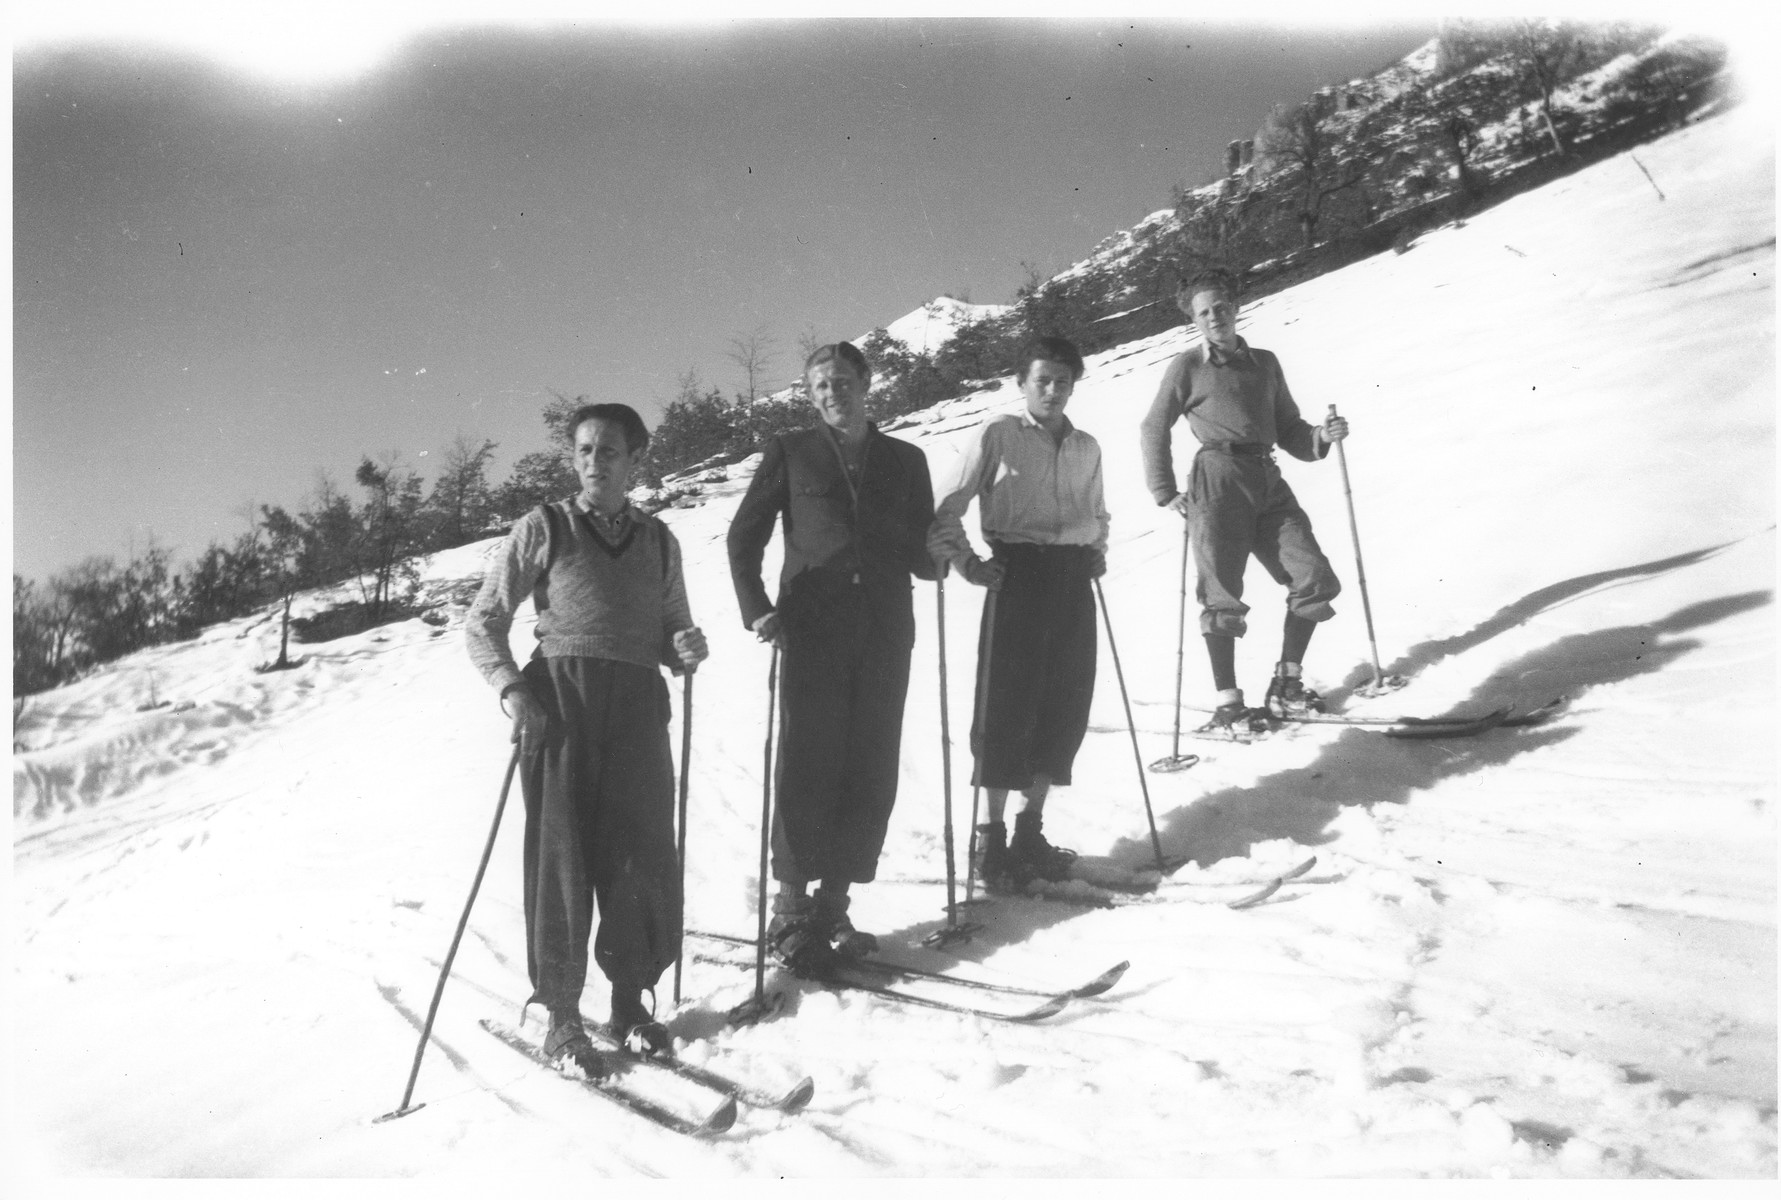 Jewish refugees ski near Valle Stura, Italy after escaping over the border from France.  Those pictured include Karl Tepper, Leopold Neuman, and Carl Roman.